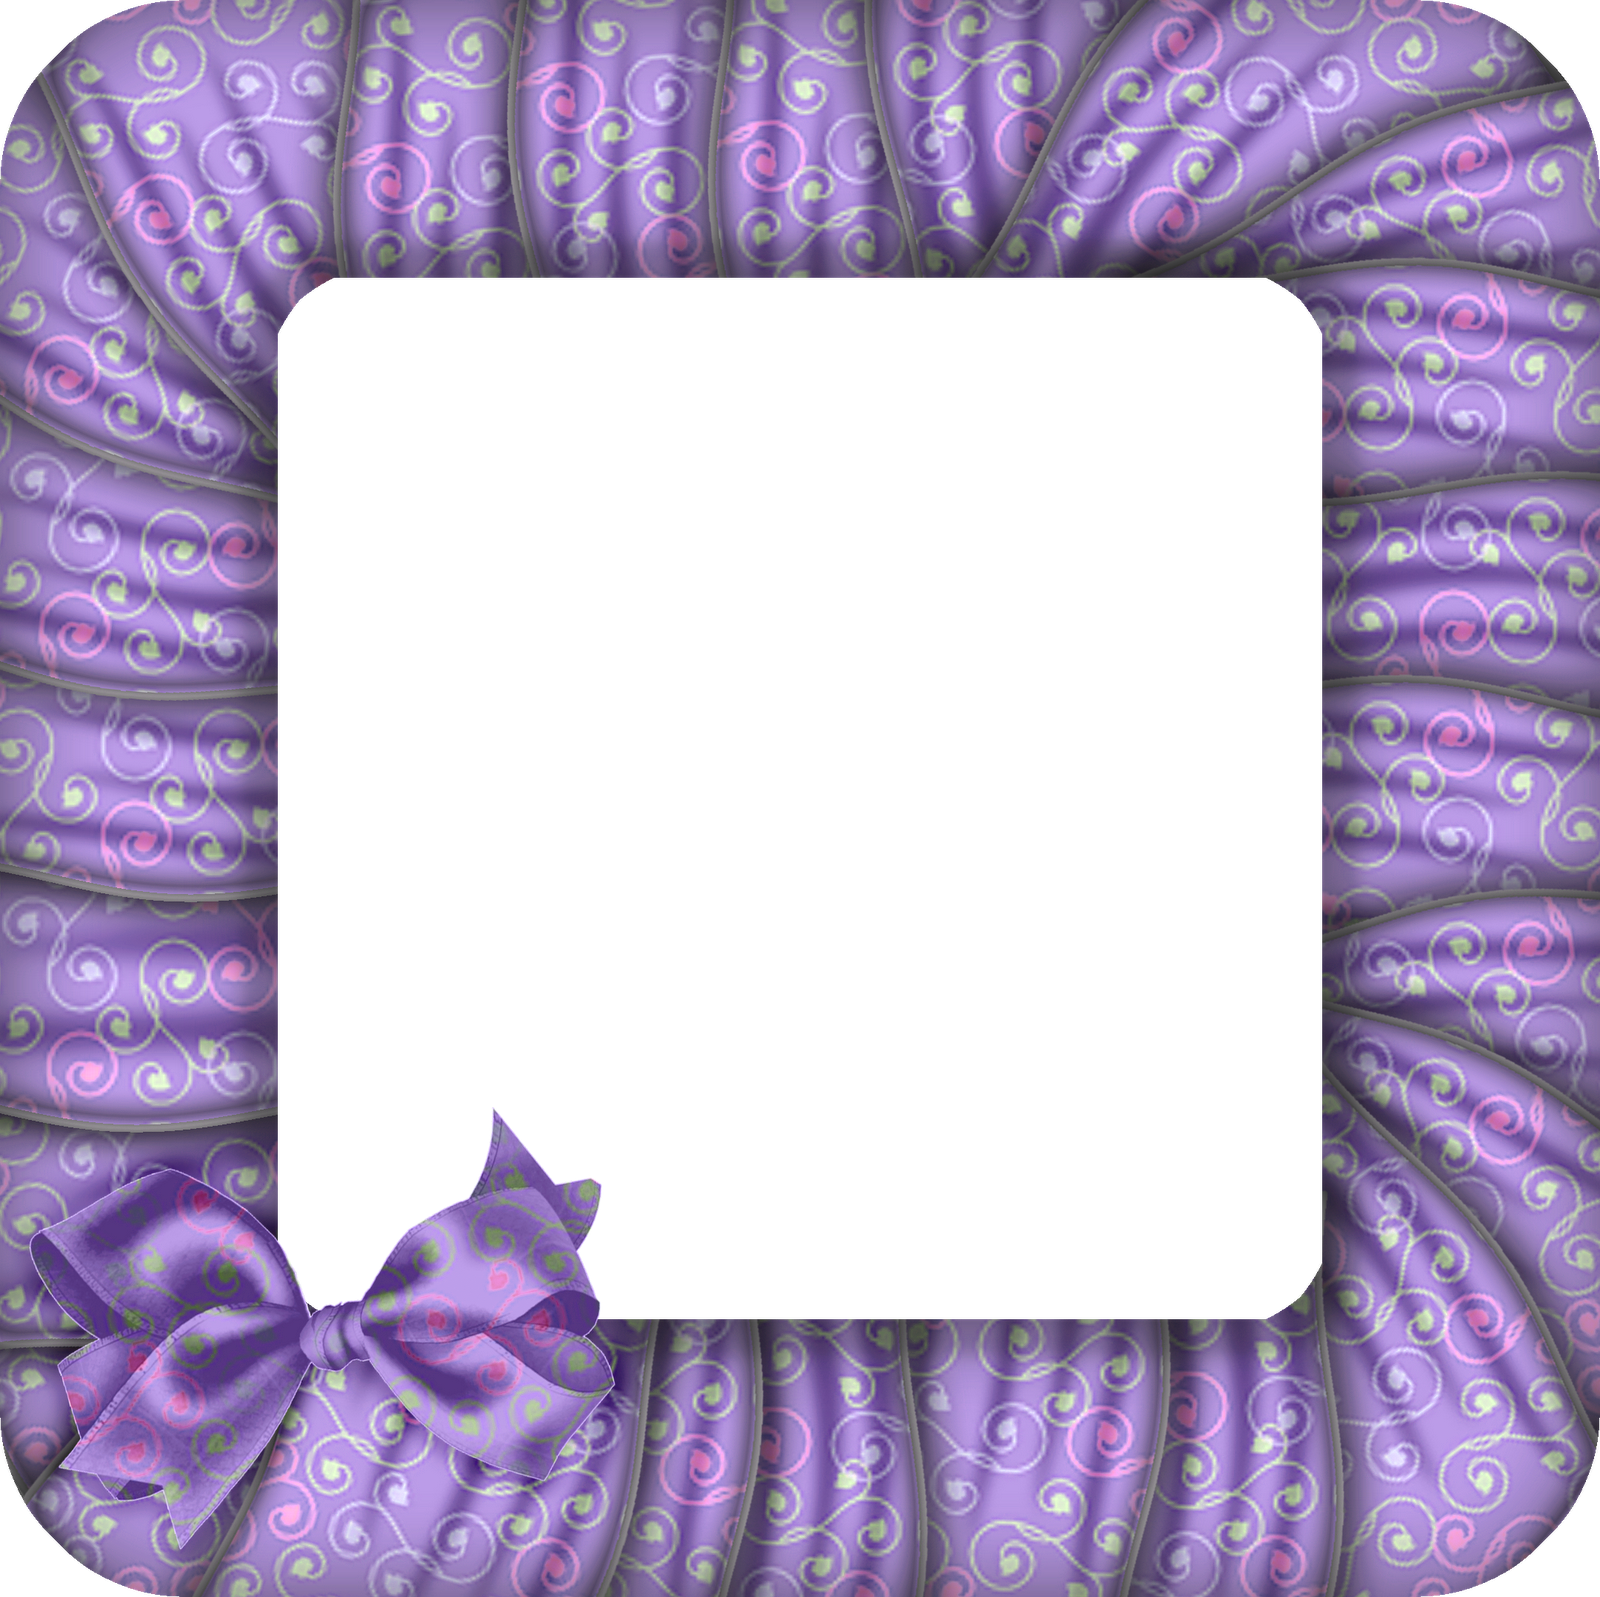 Purple frame png. Large transparent photo with